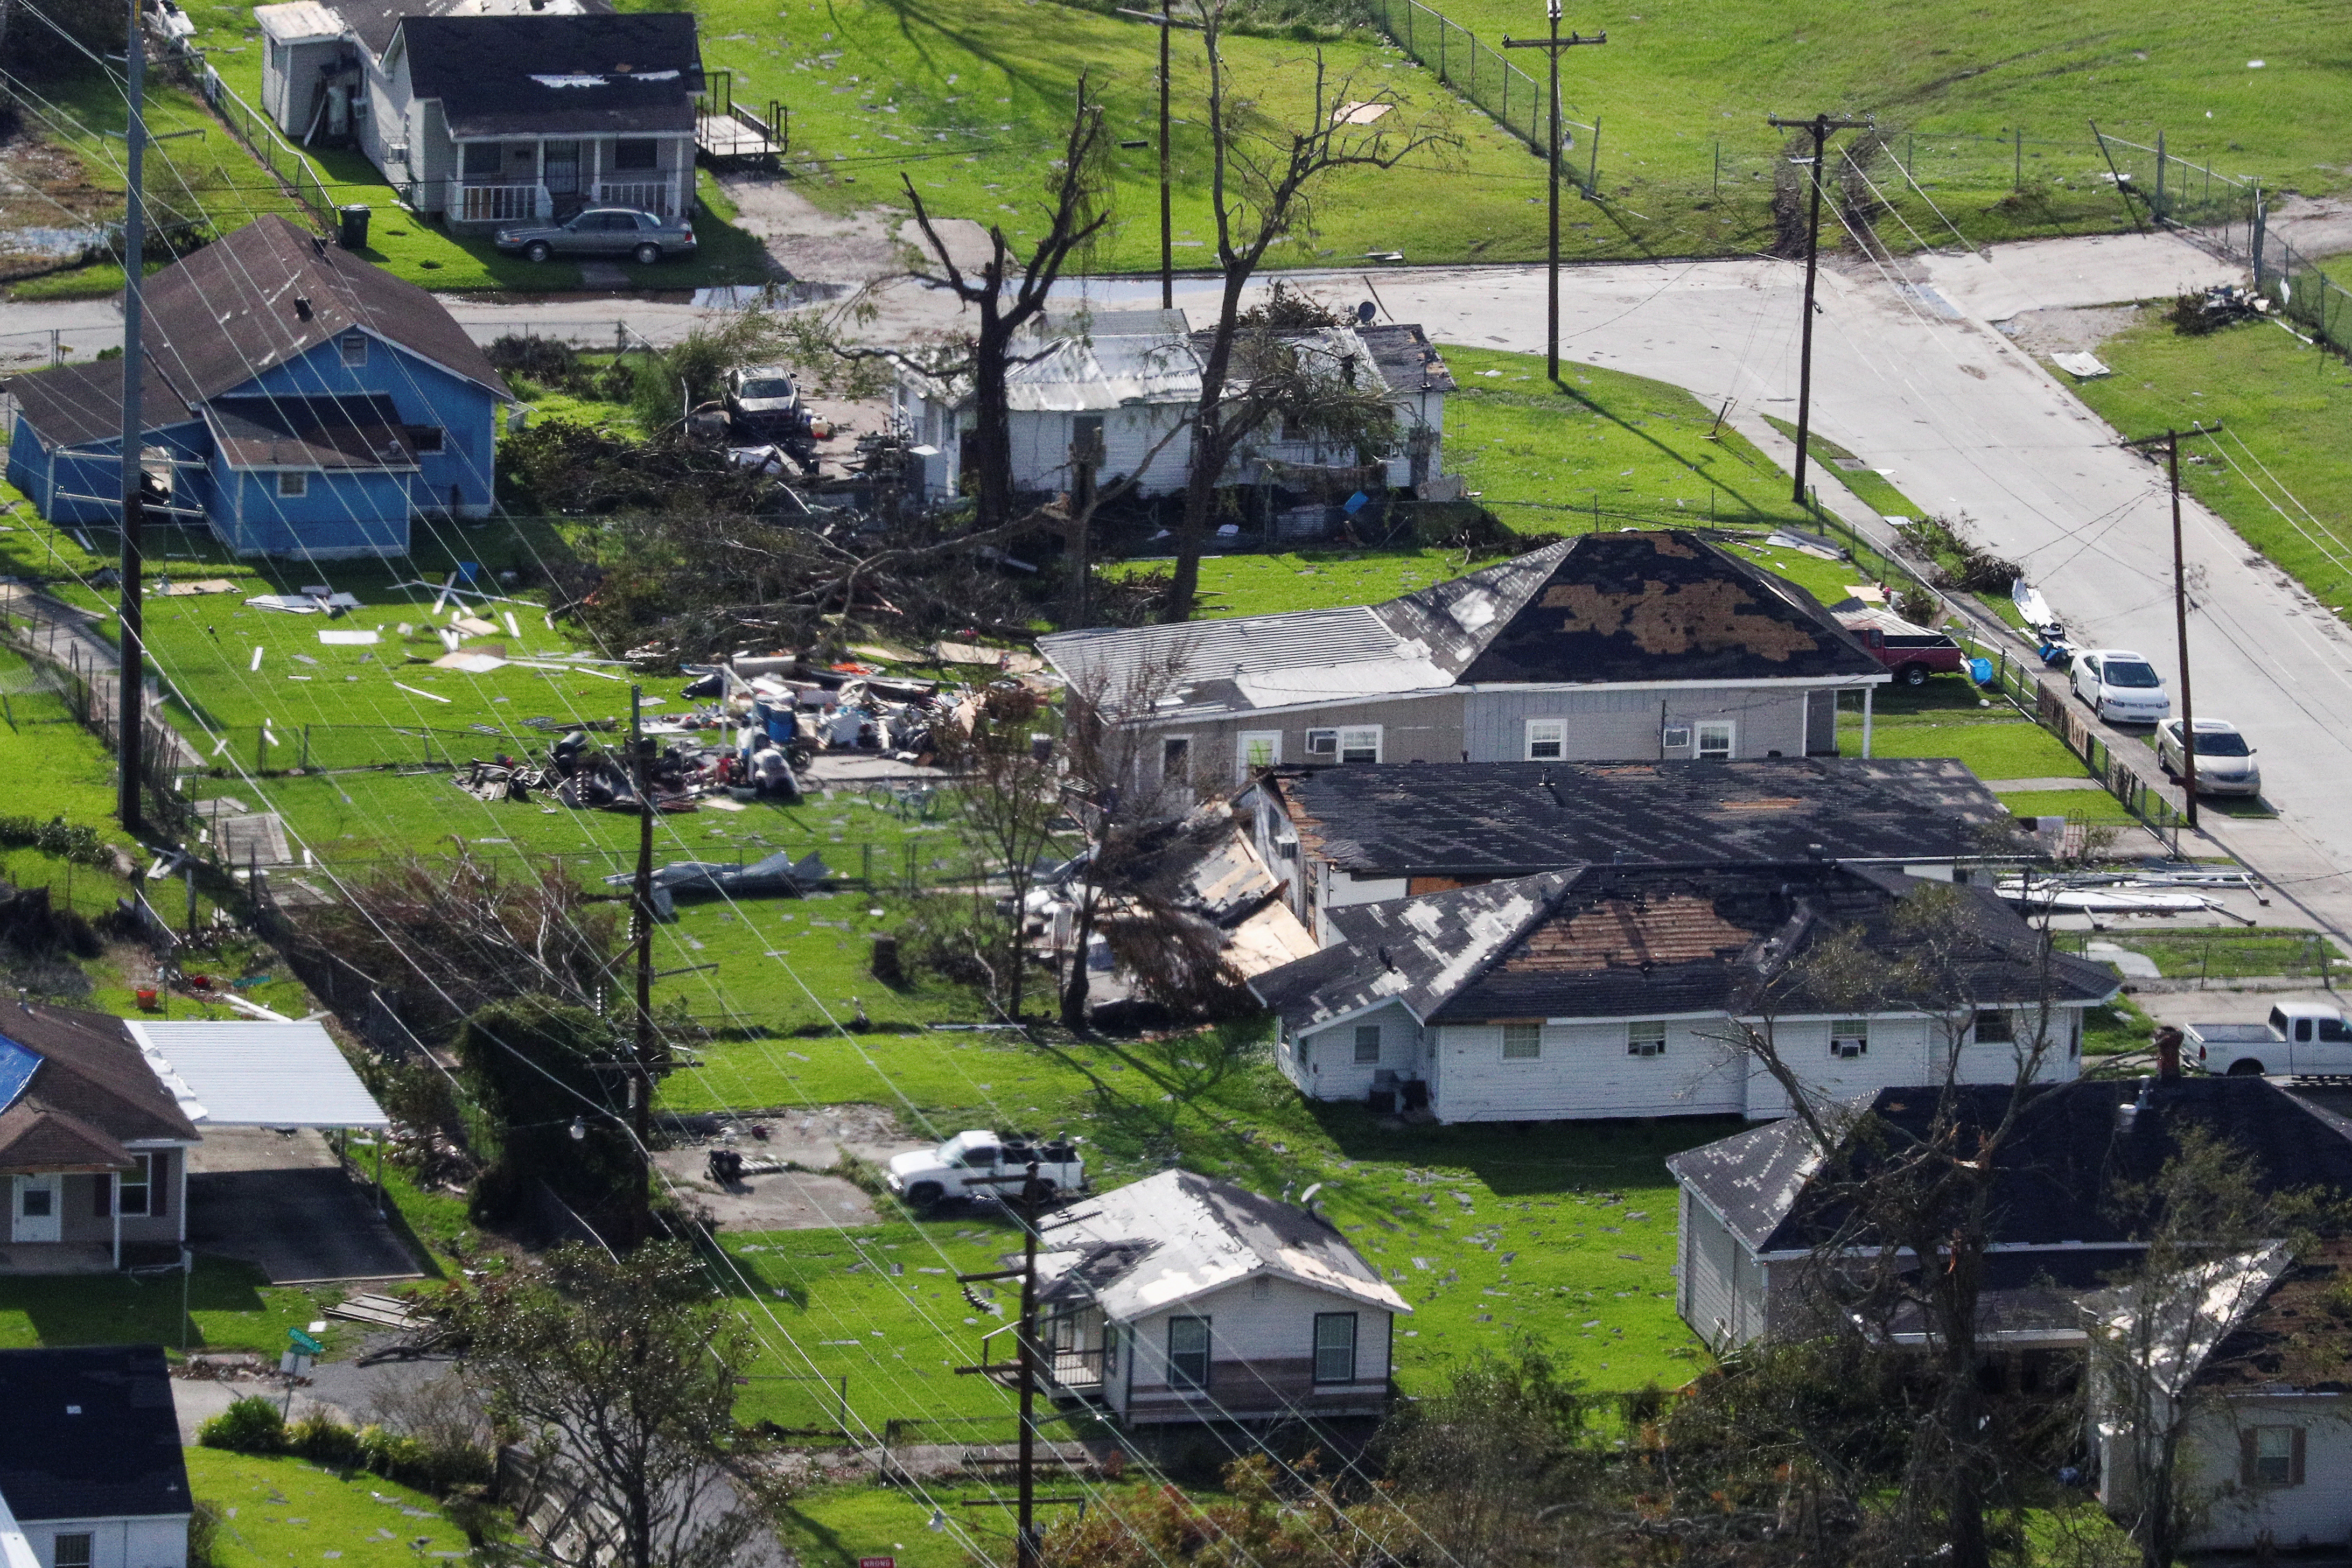 An aerial view shows debris and houses damaged by Hurricane Laura near Lake Charles, Louisiana, U.S., August 29, 2020.  REUTERS/Tom Brenner - RC21OI9IGAC7